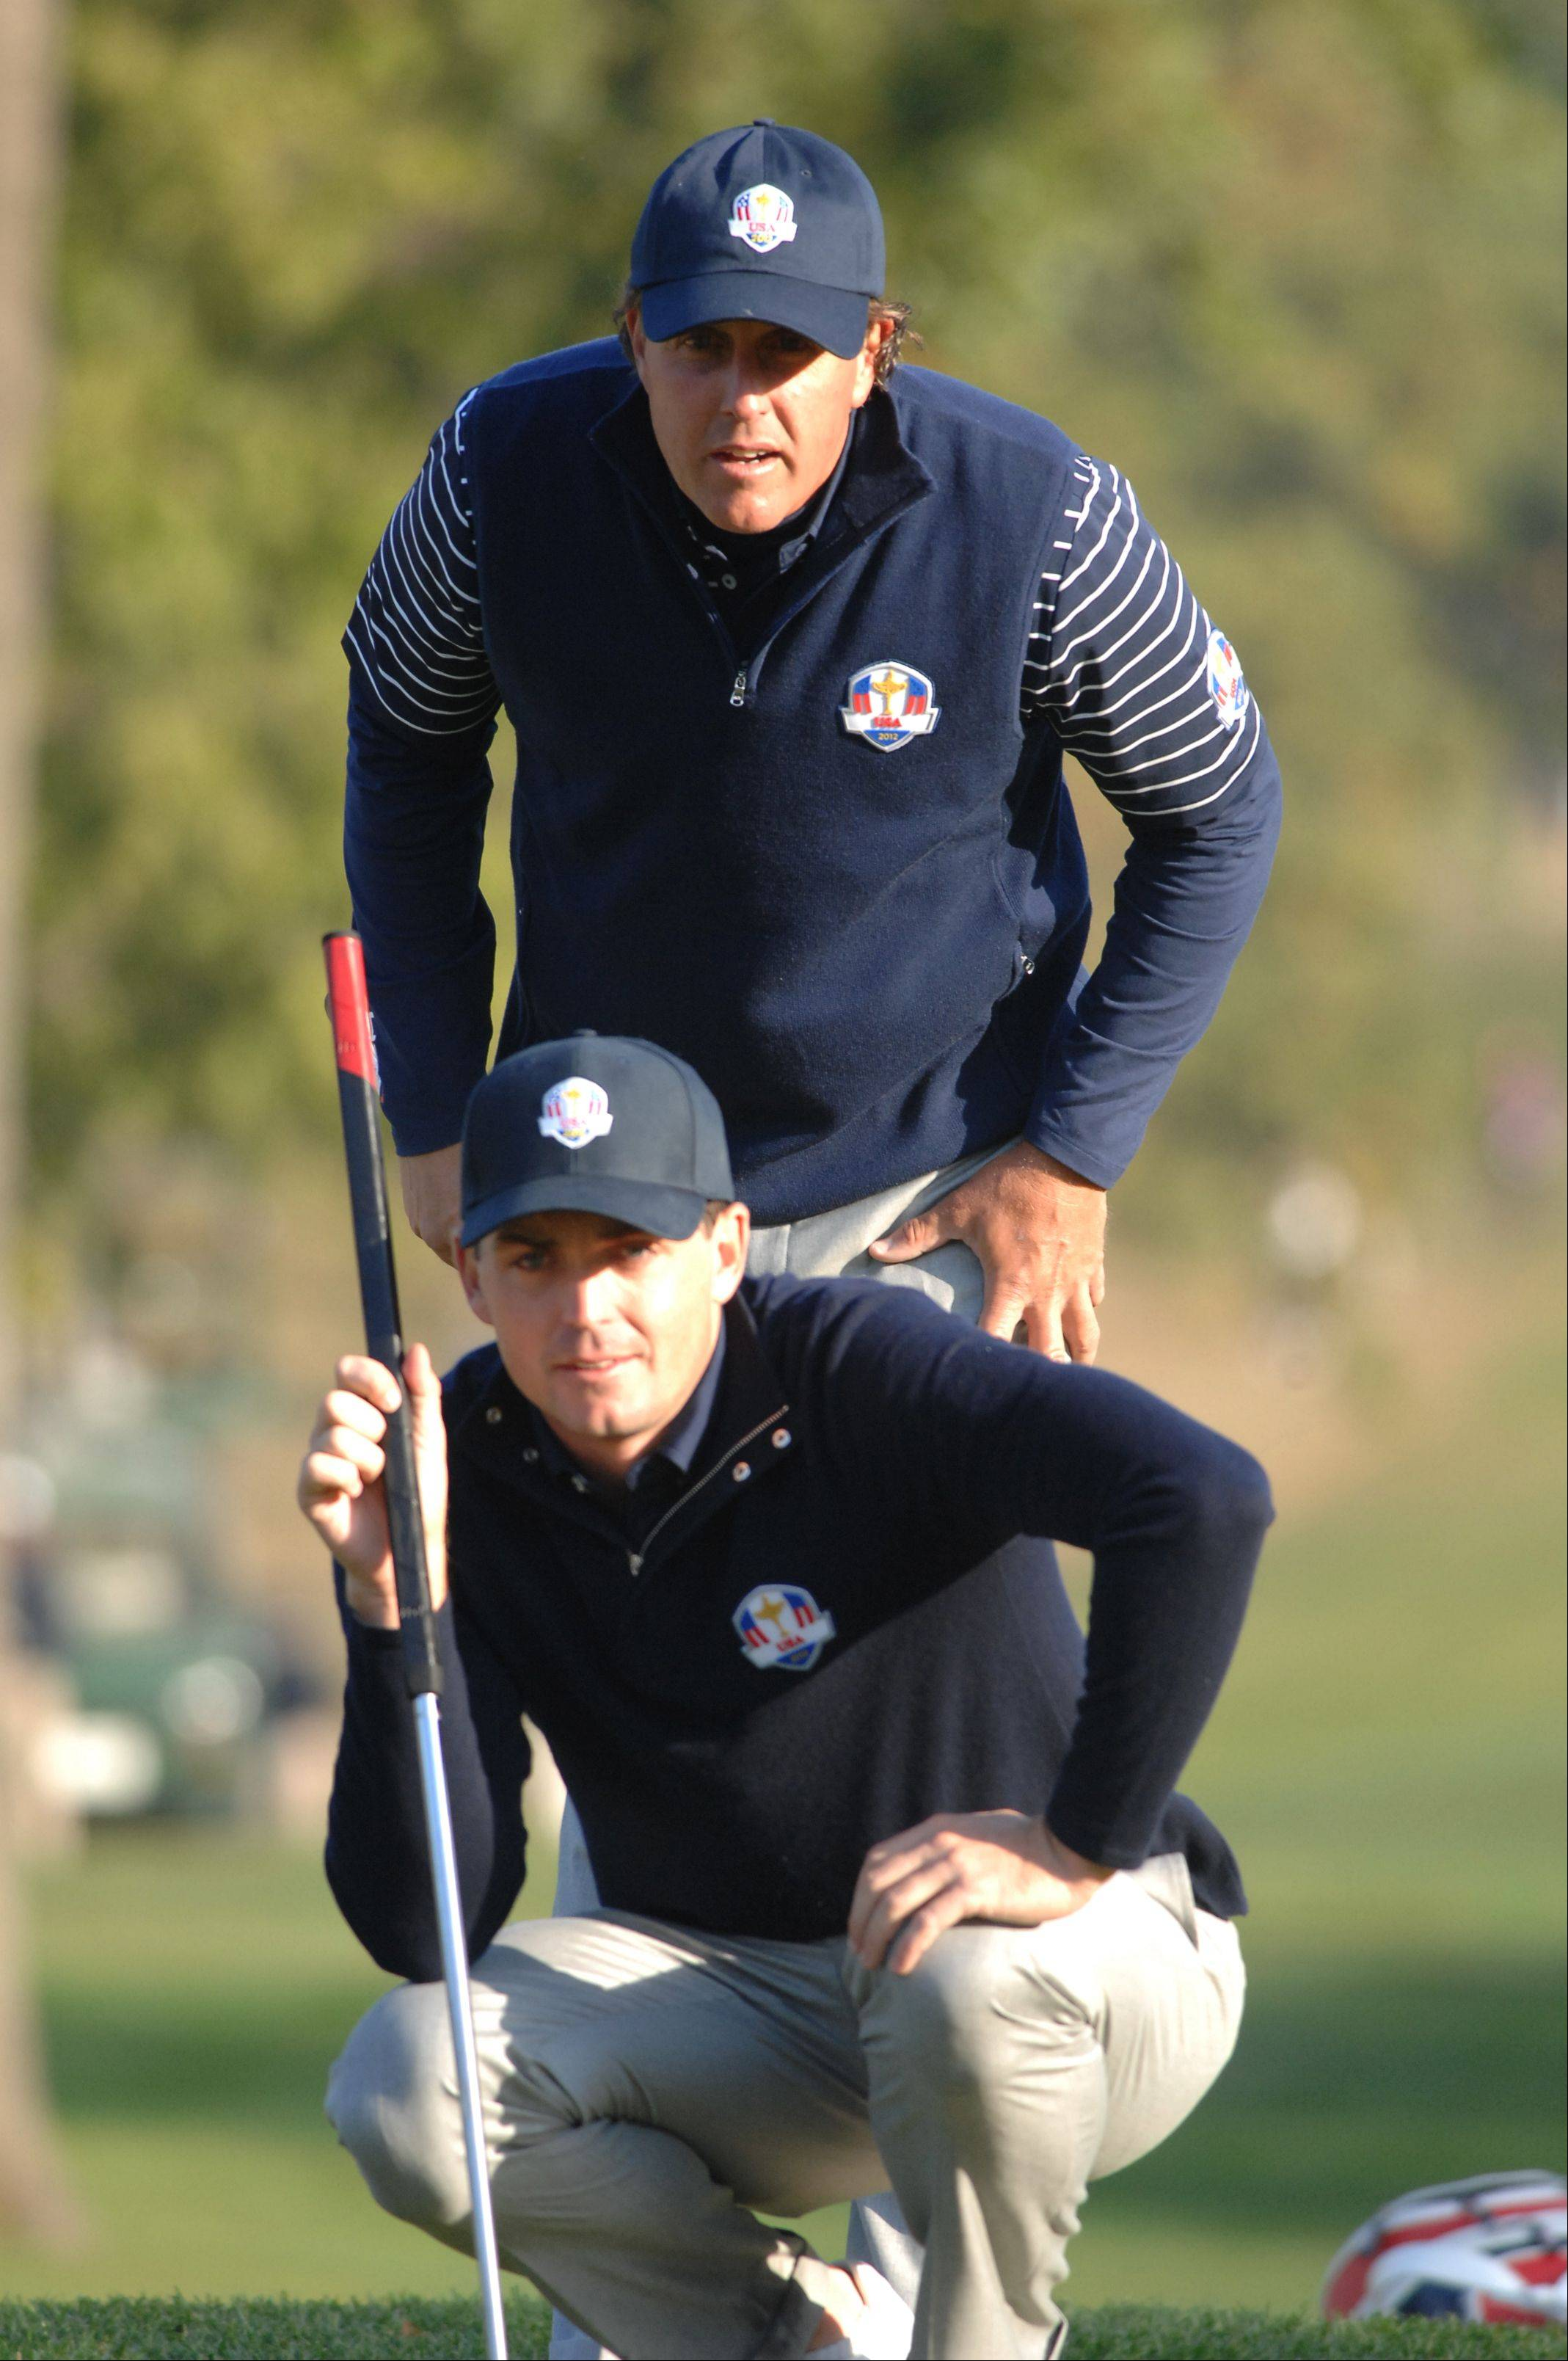 Phil Mickelson, standing, and Keegan Bradley line up Mickelson's putt on the 4th hole Saturday morning during day 2 of the 2012 Ryder Cup at Medinah Country Club.